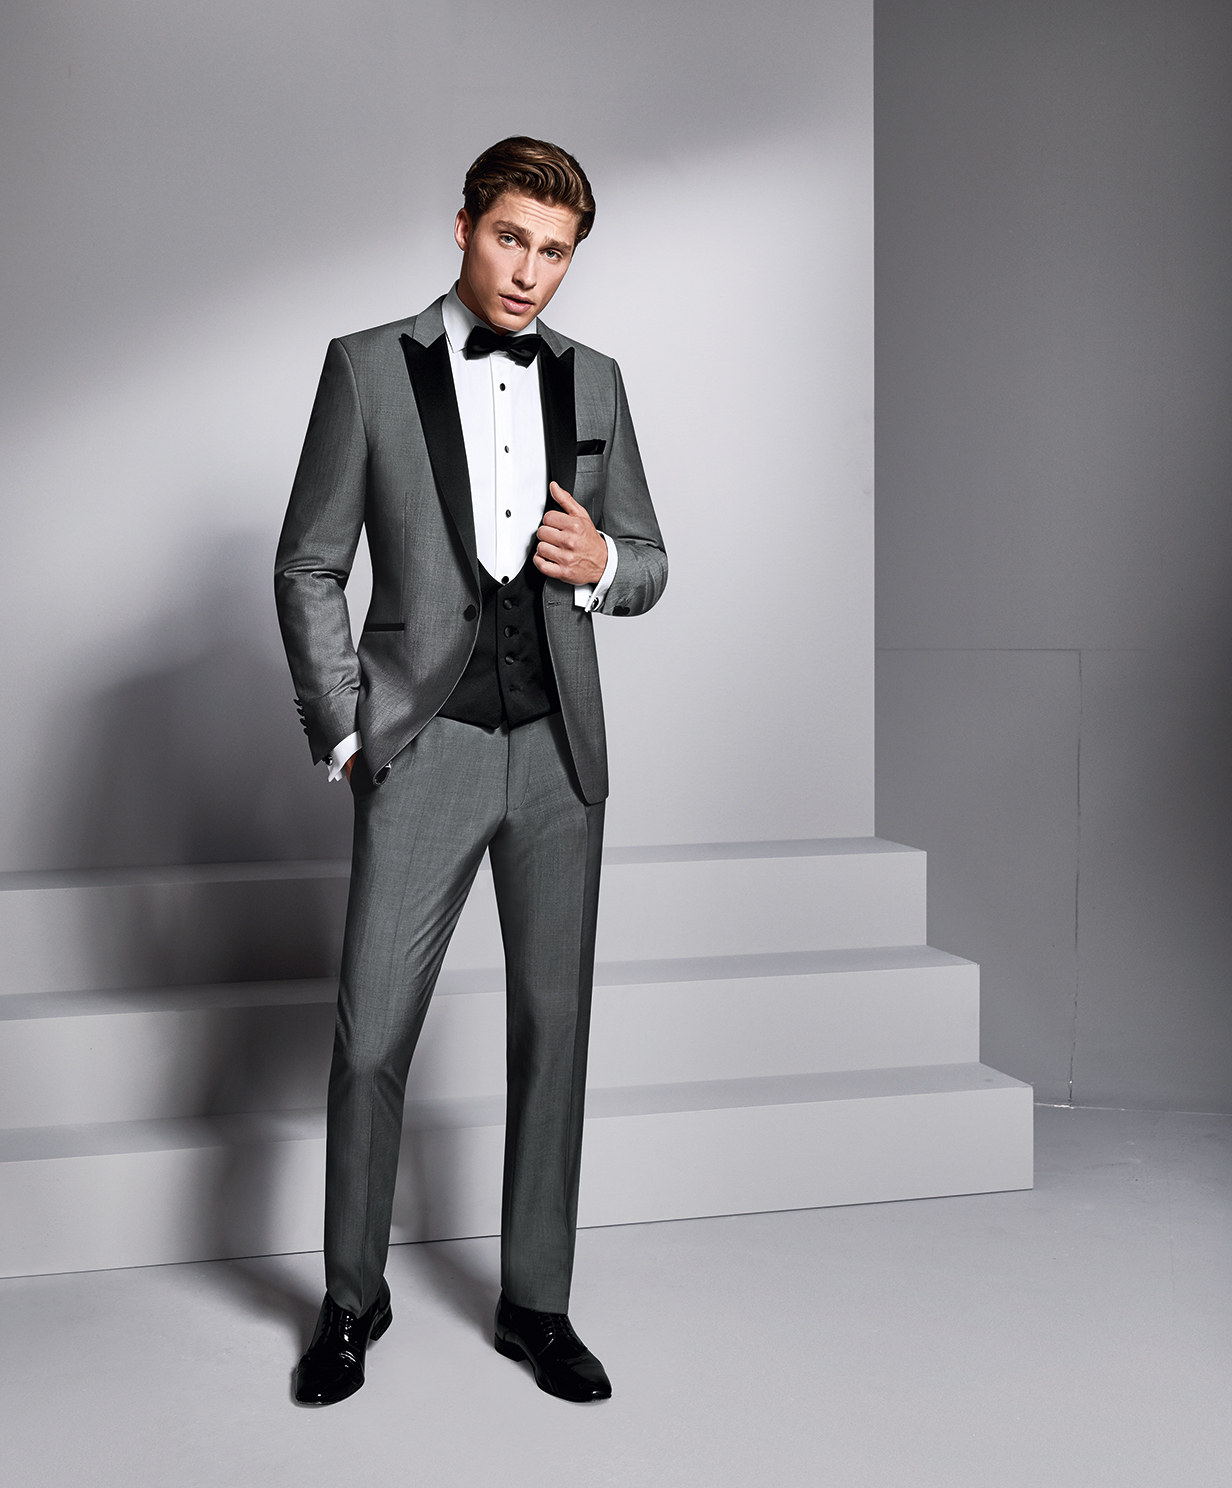 f30eca07 Tuxedos Archives - Tom Murphy's Formal and Menswear